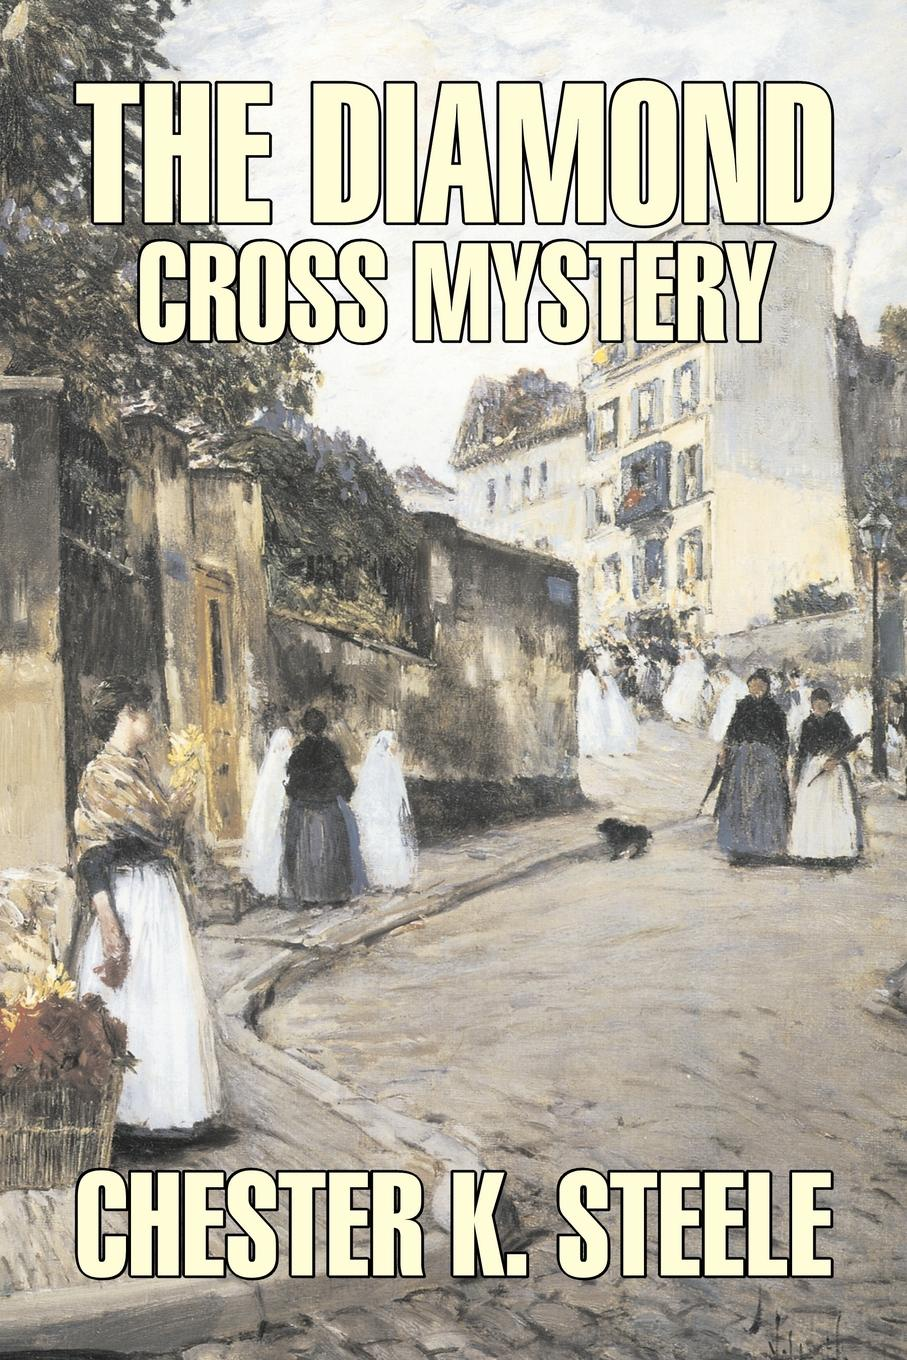 Chester K. Steele The Diamond Cross Mystery by Chester K. Steele, Fiction, Historical, Mystery & Detective, Action & Adventure бюстгальтер mystery oup s